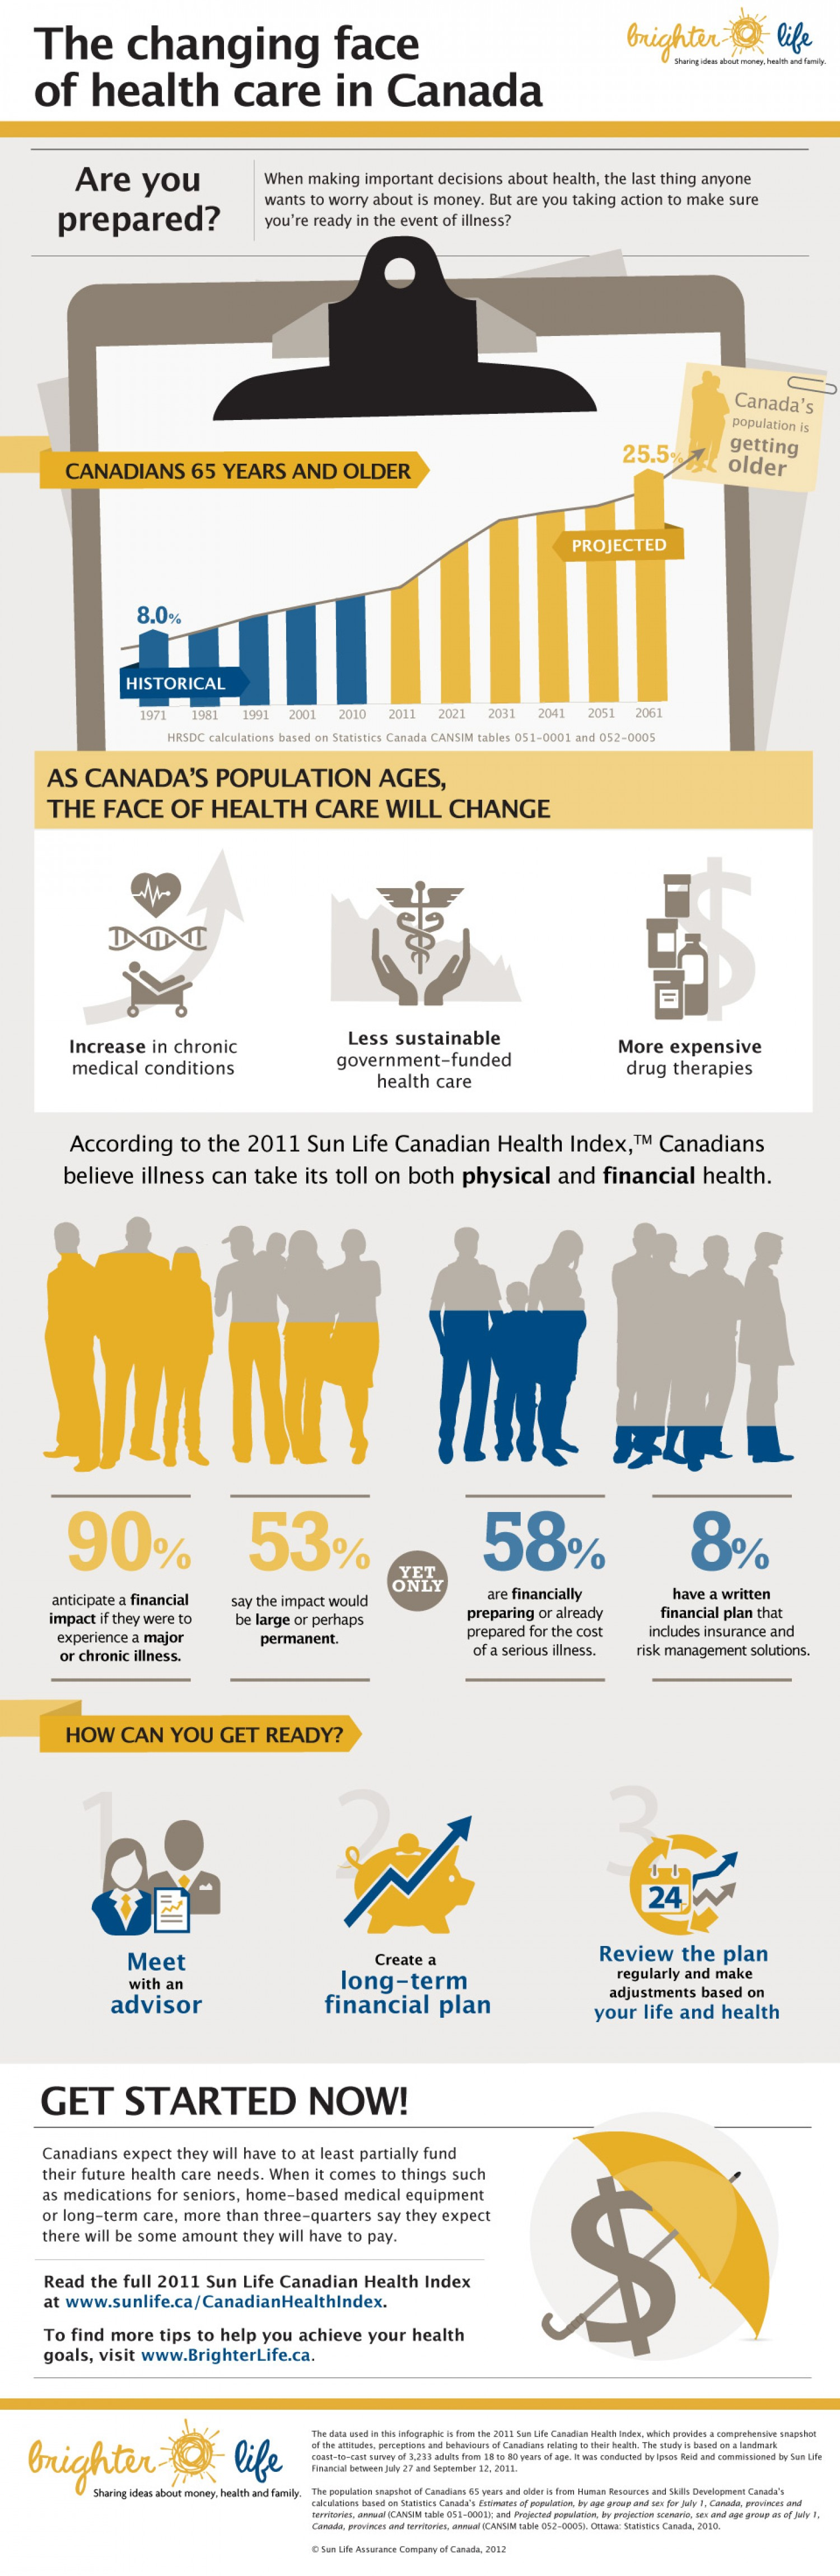 7. The changing face of health care in Canada